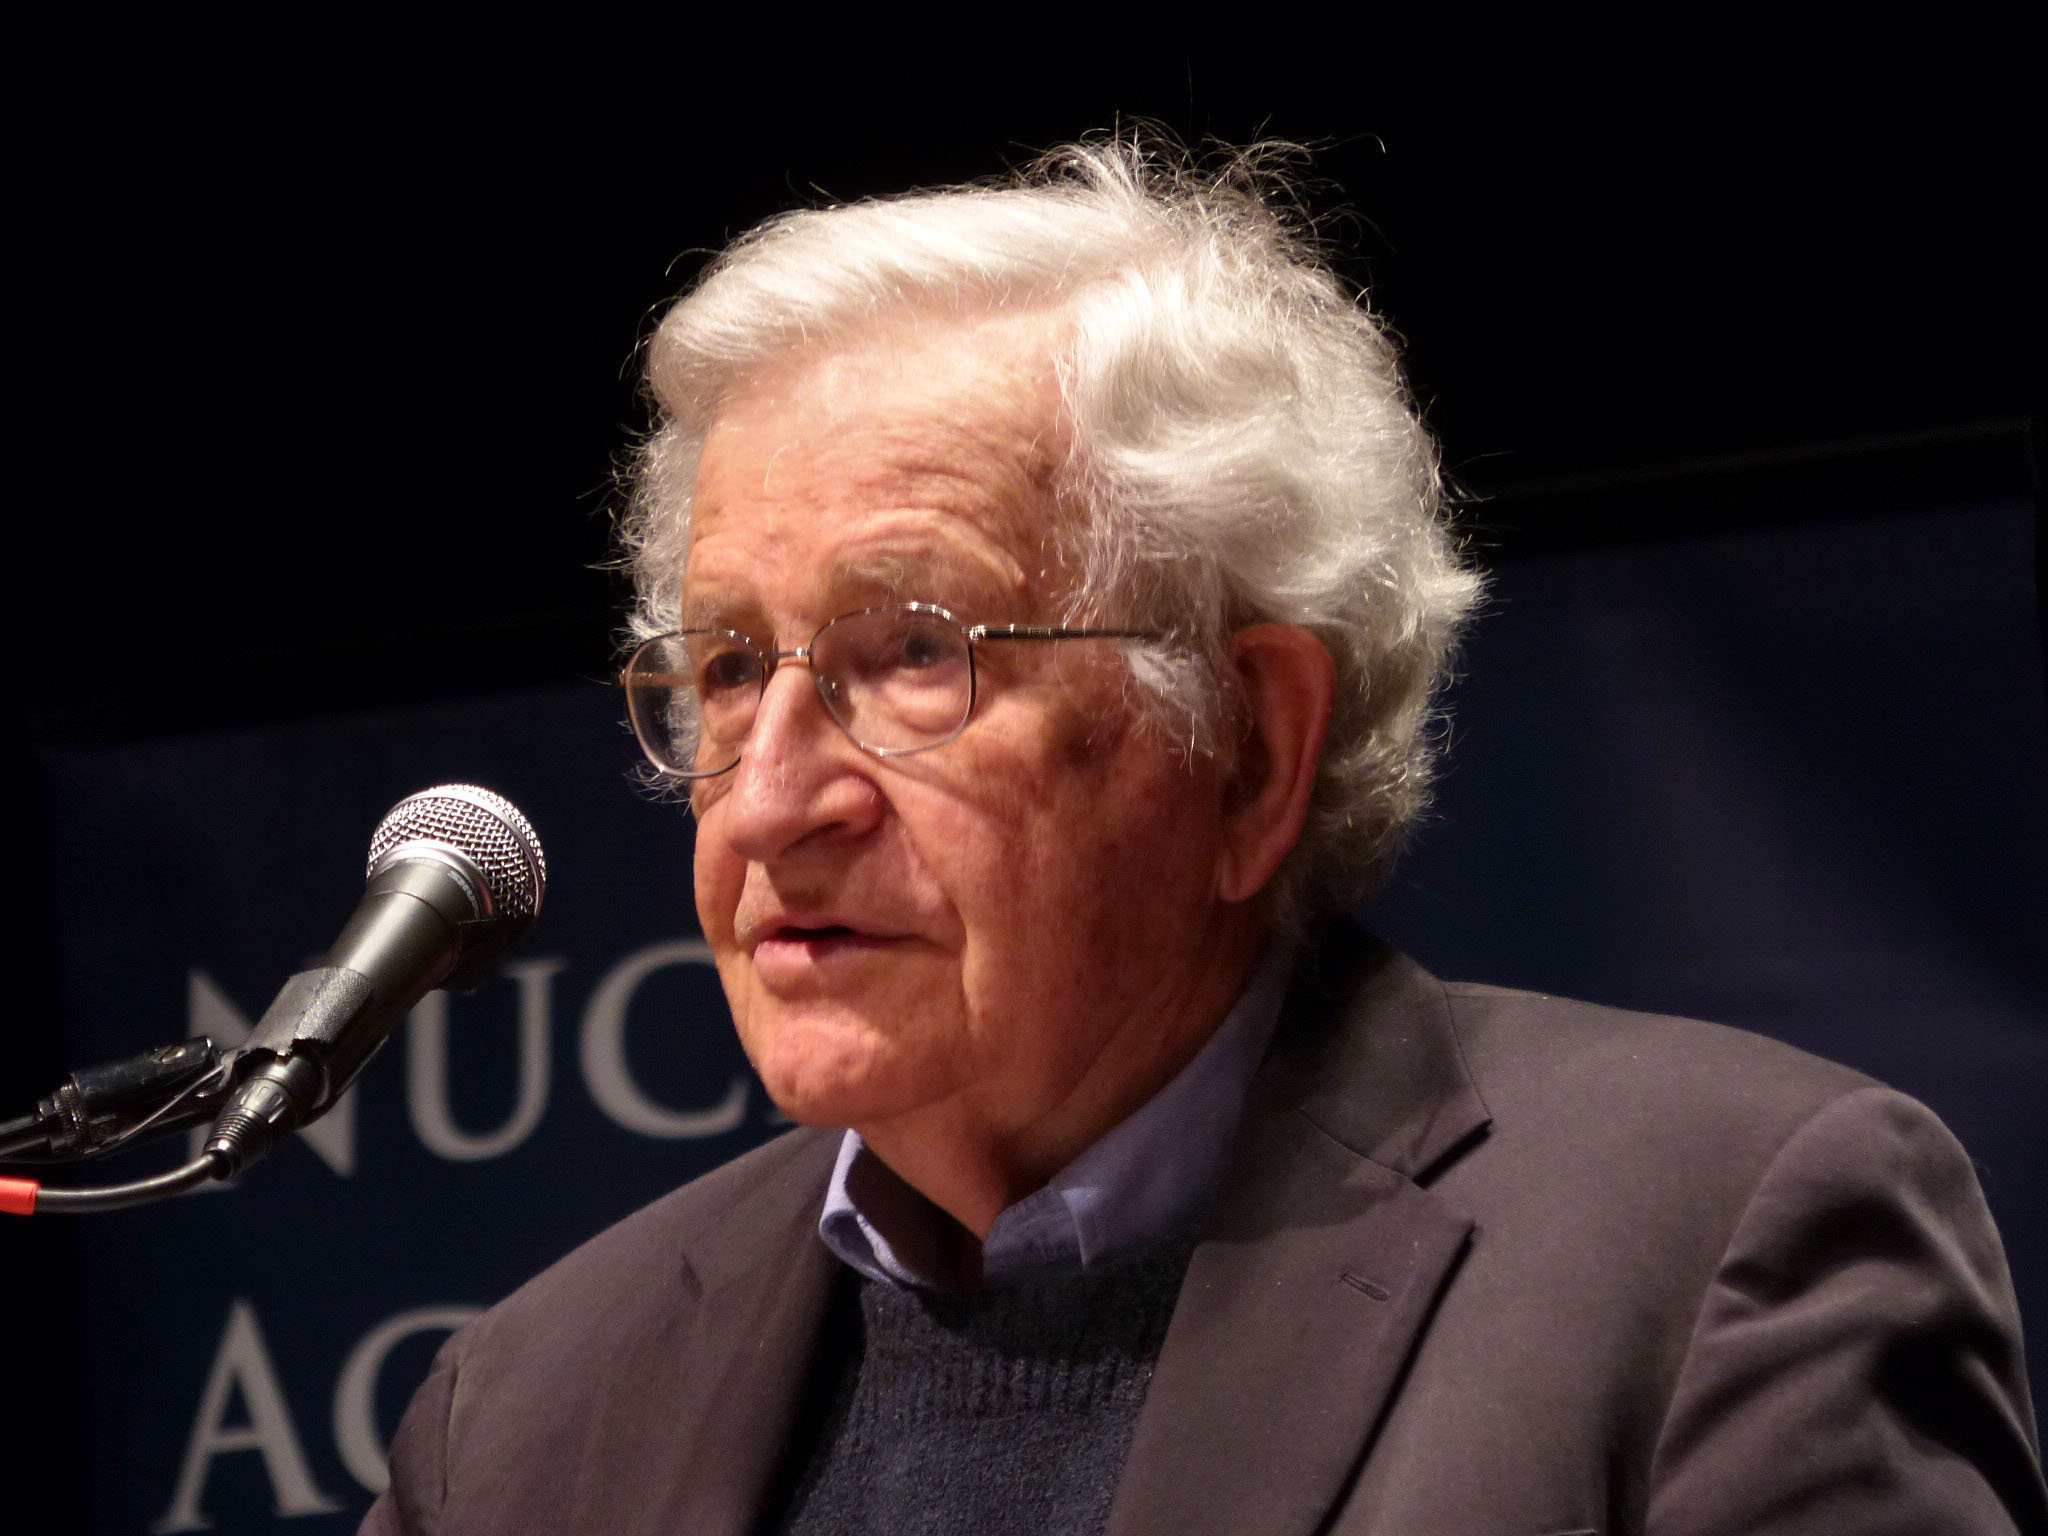 Noam Chomsky Delivering the 13th Annual Frank K. Kelly Lecture on. Humanity's Future 20140228-080.JPG 274.67 KB